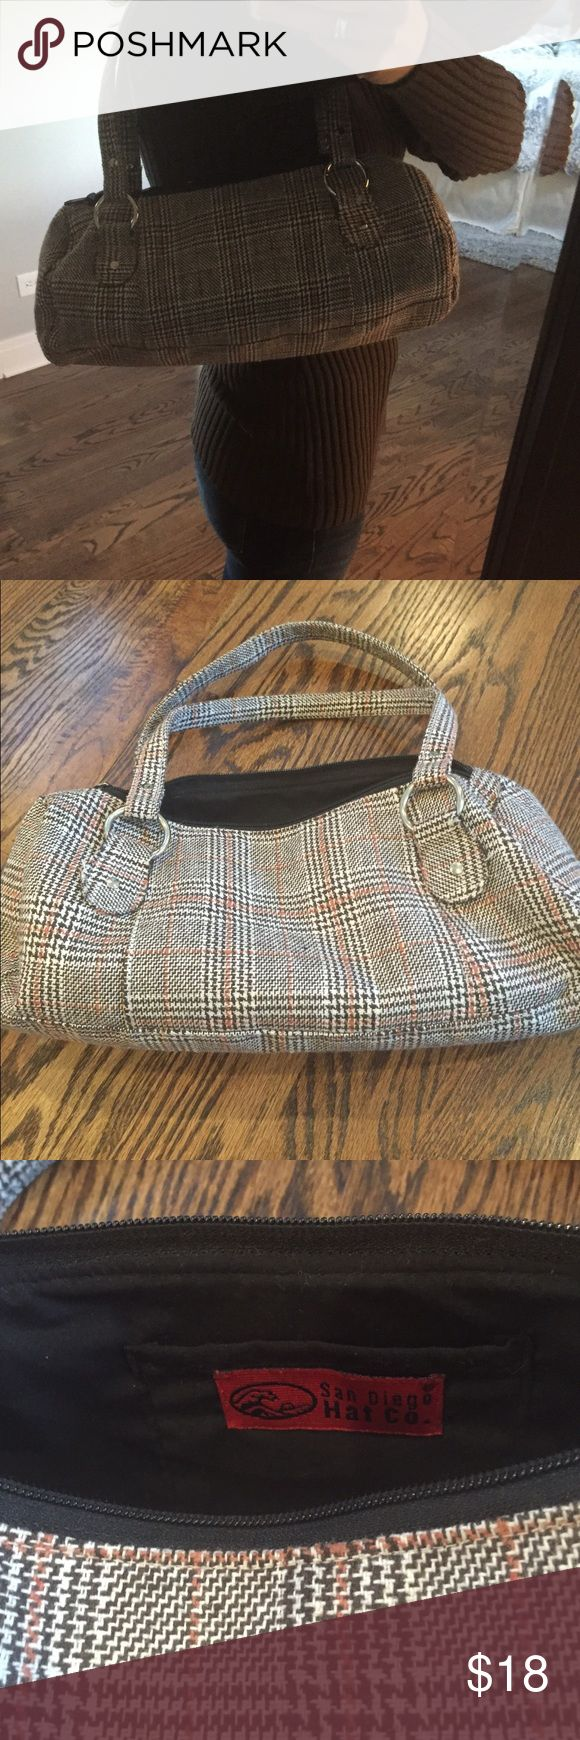 Brown plaid purse Carry something that stands out this fall!  This plaid bag combines falls best colors - cream, brown and orange.  It is a roomy satchel style with one small interior pocket.  Purchased at a small store in Chicago. In excellent used condition. San Diego Hat Company Bags Satchels